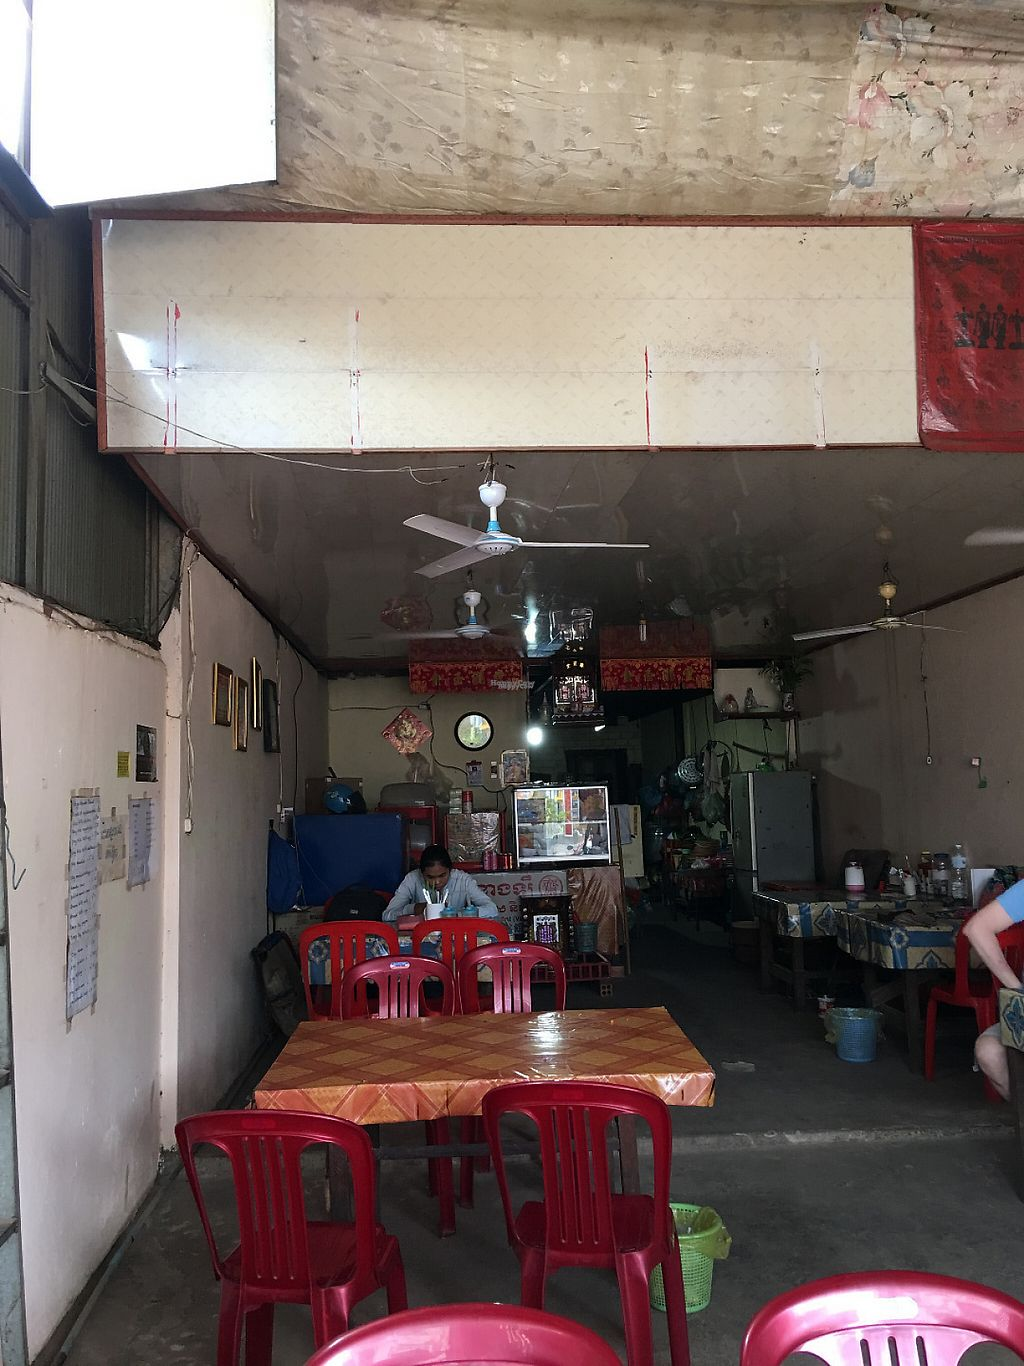 """Photo of Kang Le Restaurant  by <a href=""""/members/profile/Stevie"""">Stevie</a> <br/>Inside <br/> February 15, 2017  - <a href='/contact/abuse/image/87149/226777'>Report</a>"""